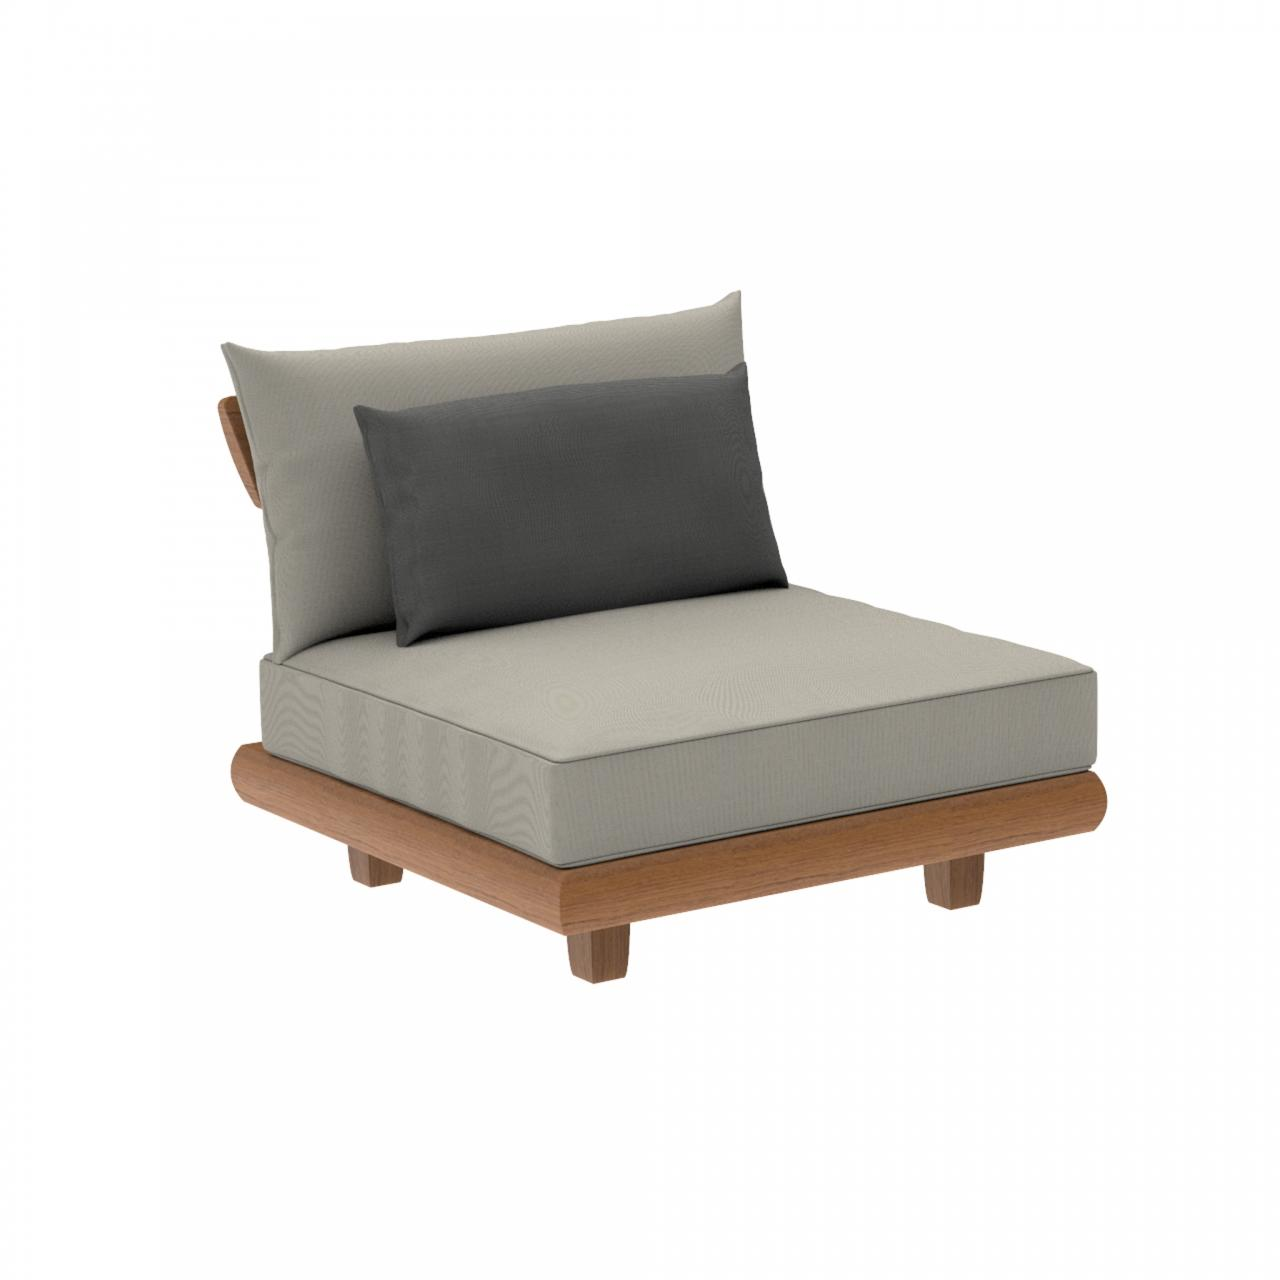 middle modular unit or armchair in teak with all weather cushions